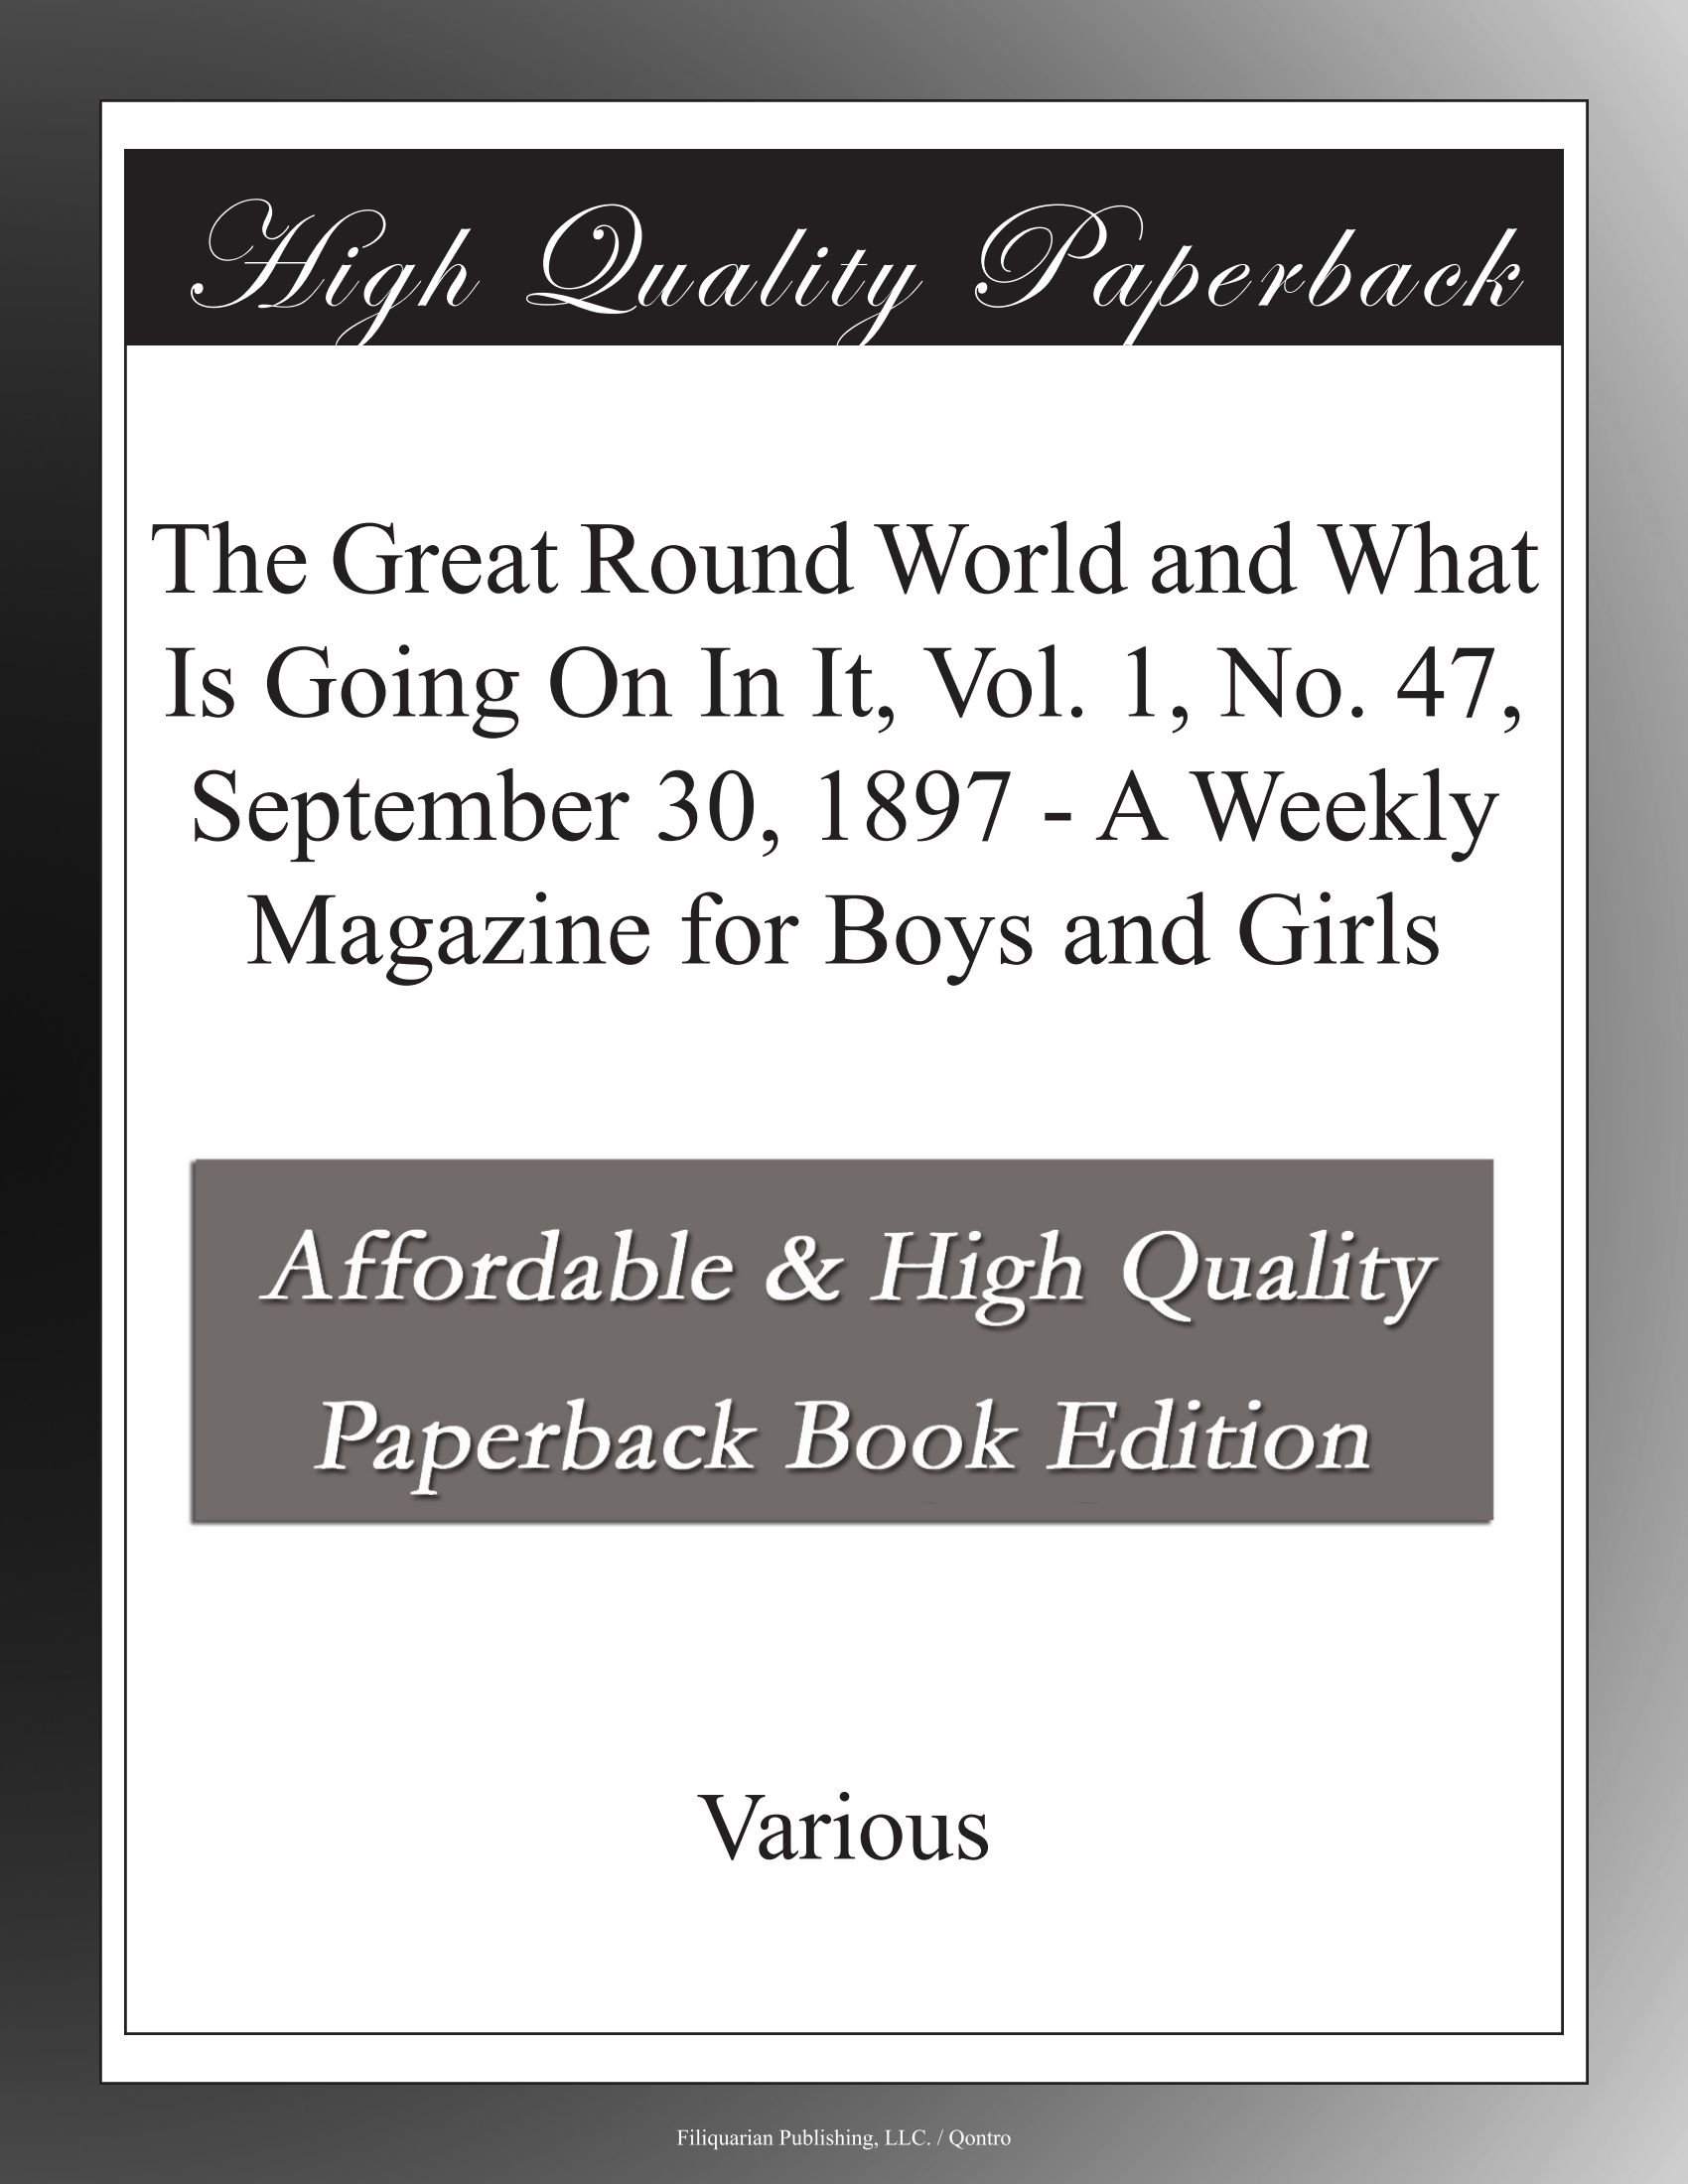 The Great Round World and What Is Going On In It, Vol. 1, No. 47, September 30, 1897 - A Weekly Magazine for Boys and Girls pdf